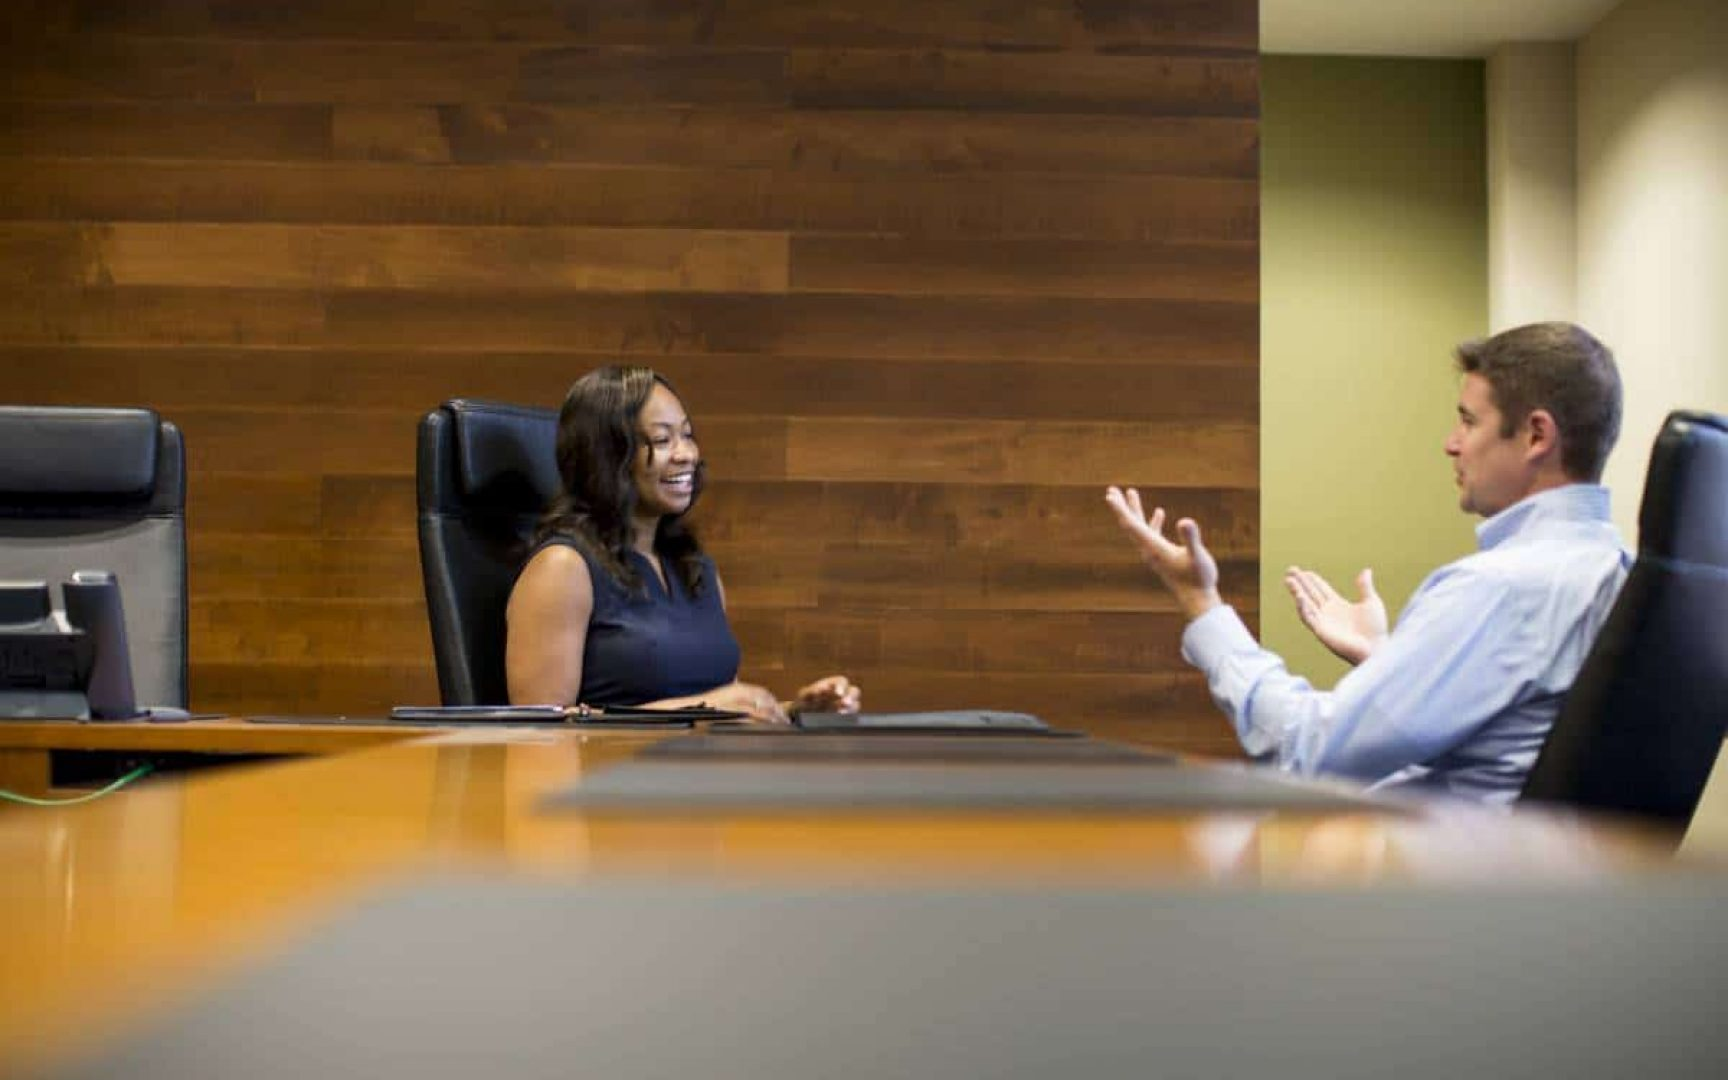 A UF MBA student talking with a member of the Career Services team in a boardroom